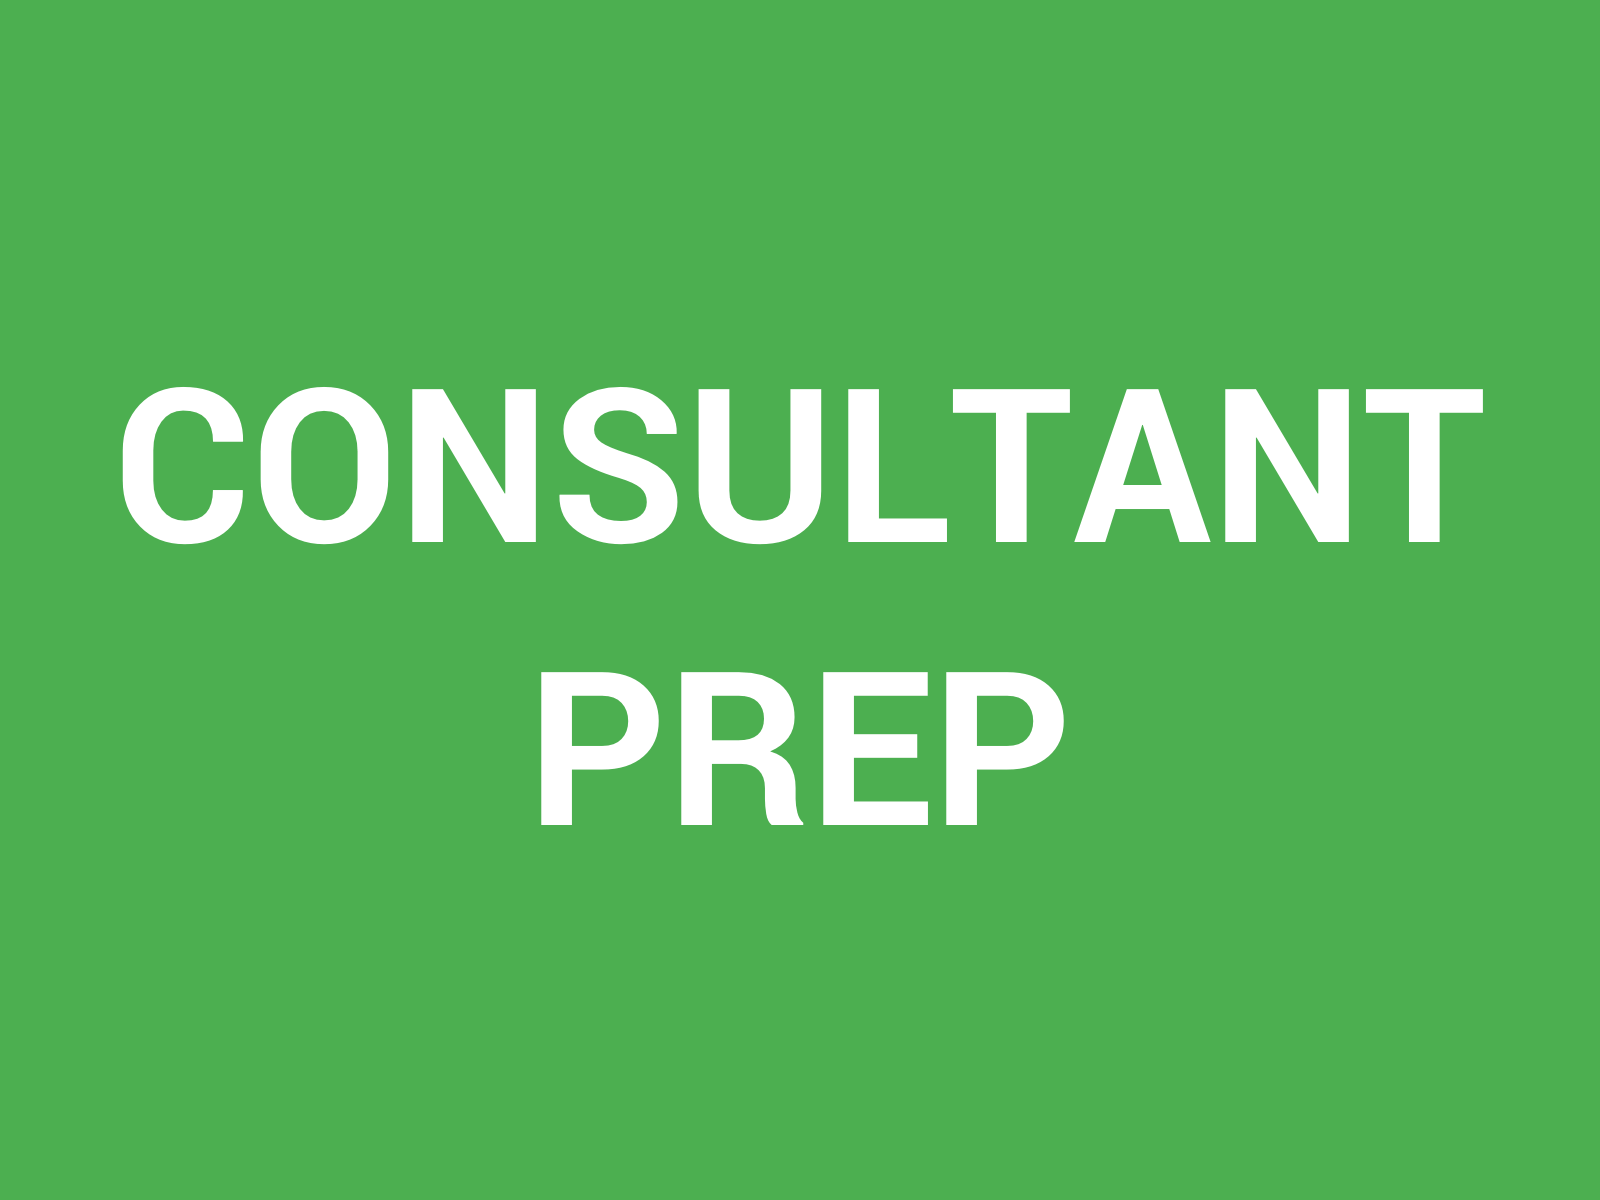 HST - Consultant Prep (card).png